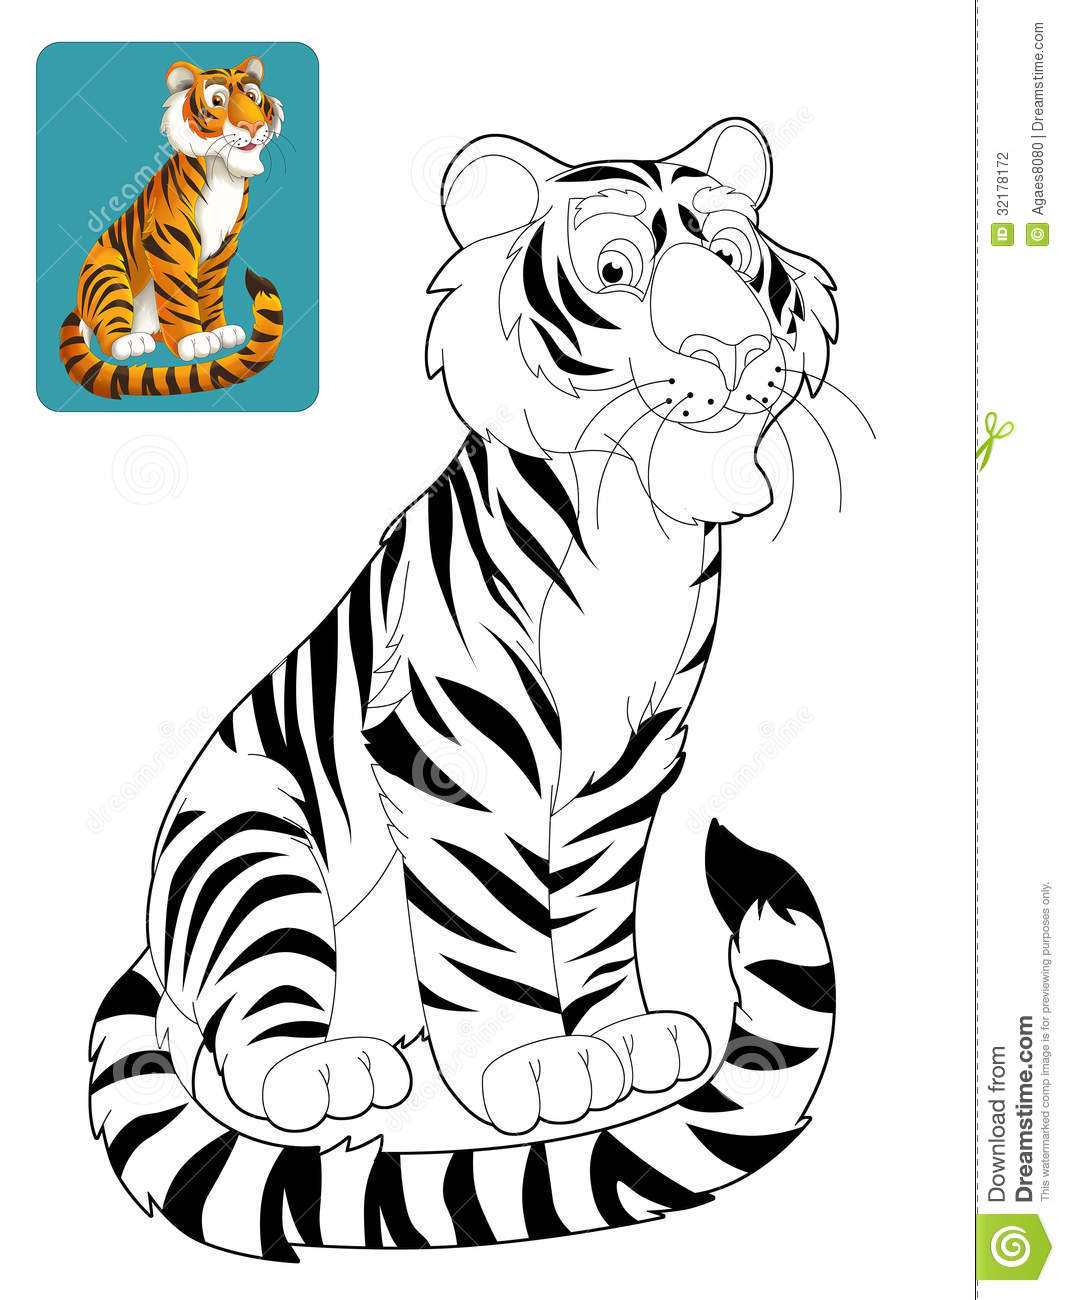 safari people coloring pages - photo#32